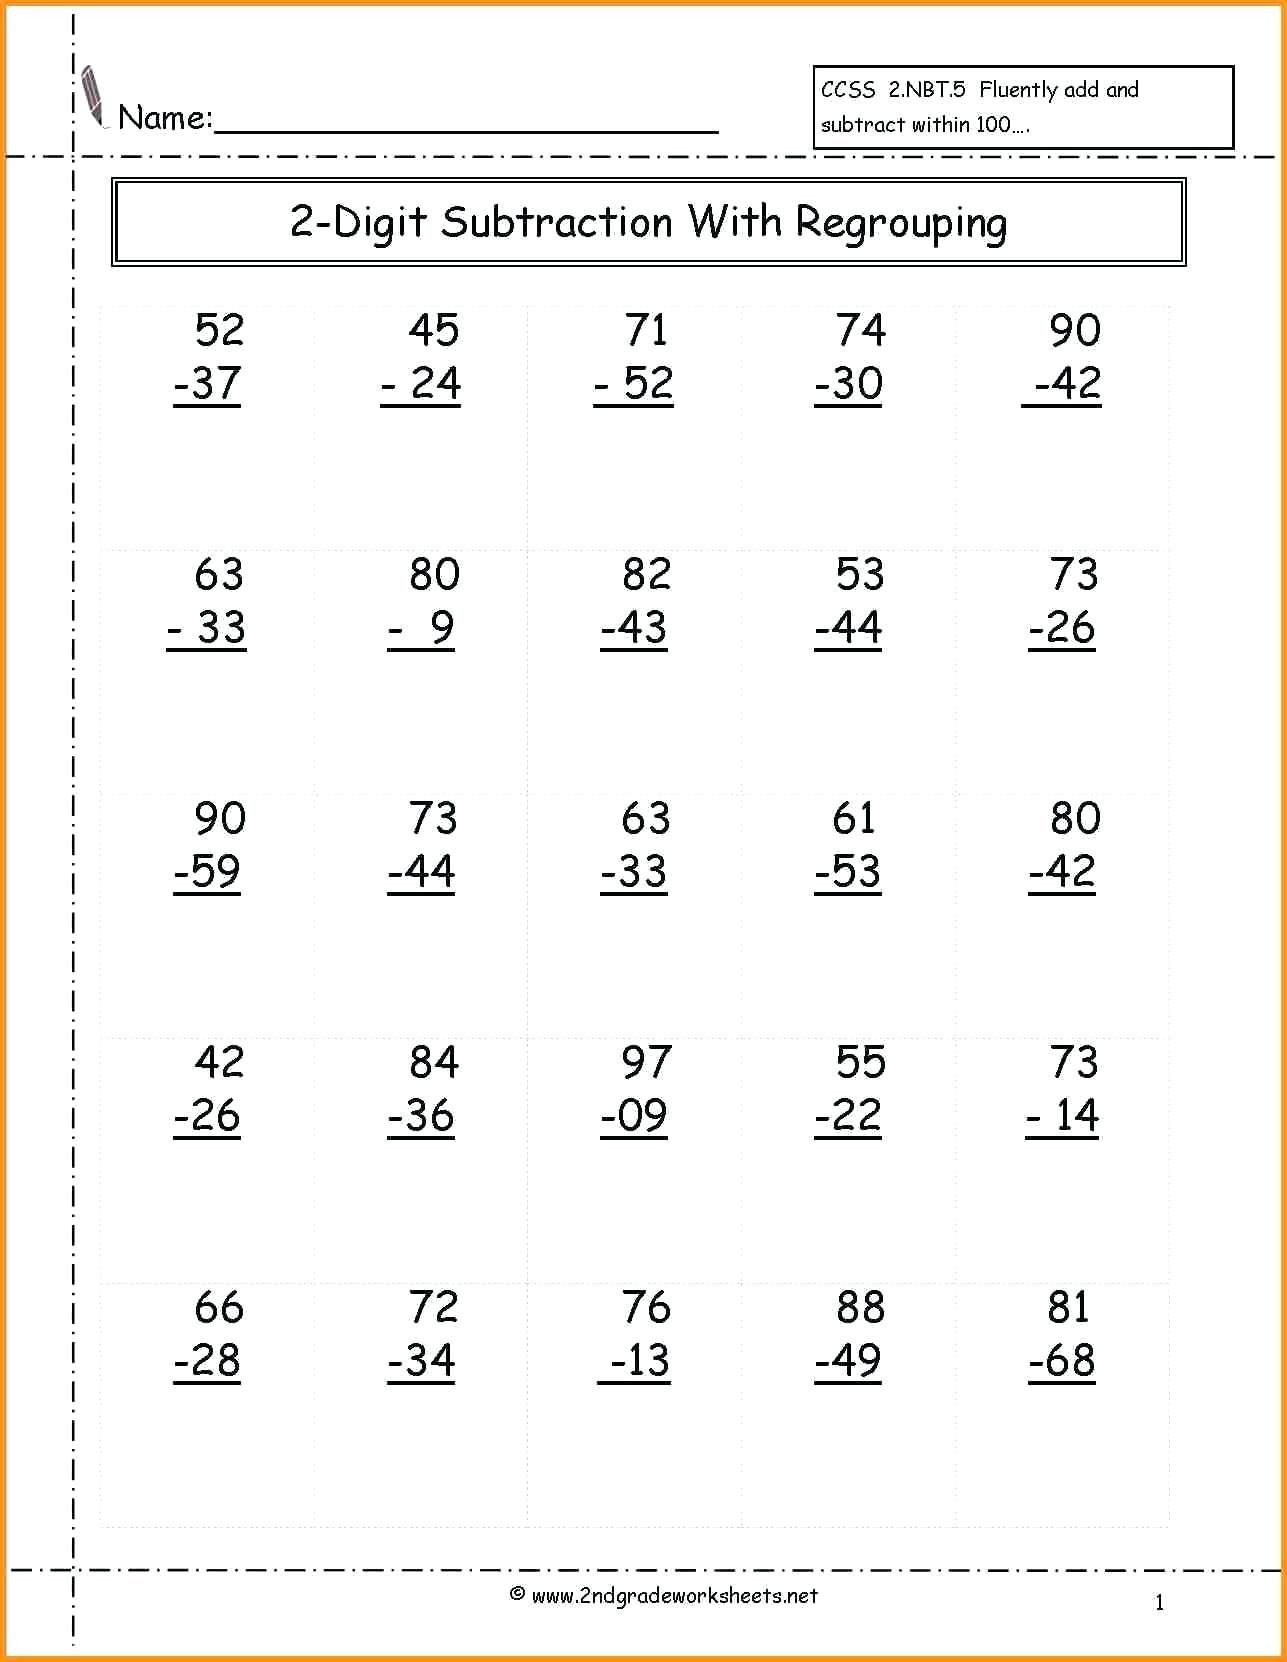 free math worksheets first grade 1 subtraction subtract 1 digit from 2 digit no regrouping of free math worksheets first grade 1 subtraction subtract 1 digit from 2 digit no regrouping